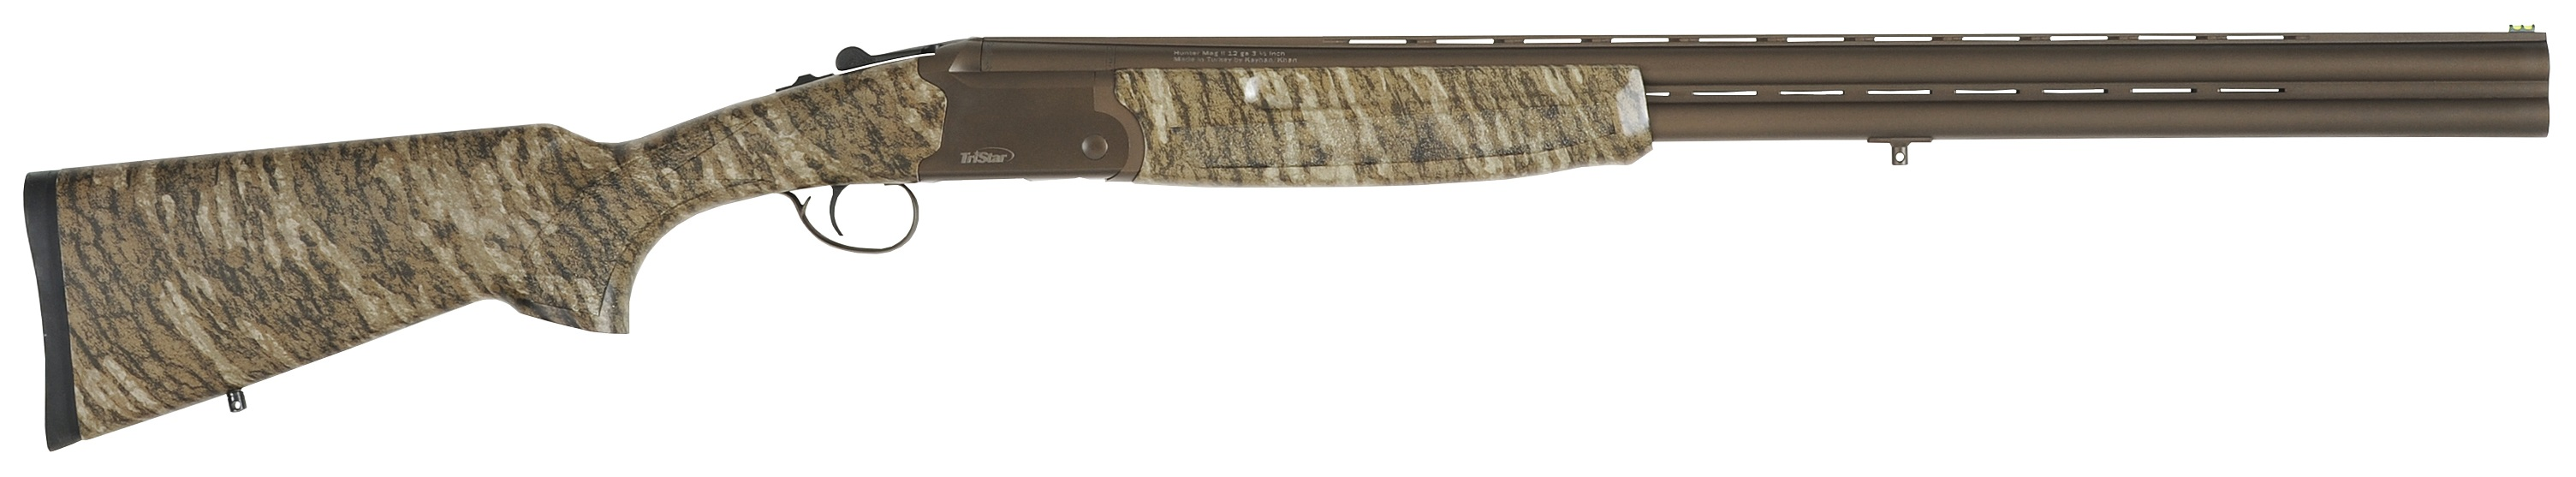 TriStar Sporting Arms Hunter Magnum II 12 Gauge